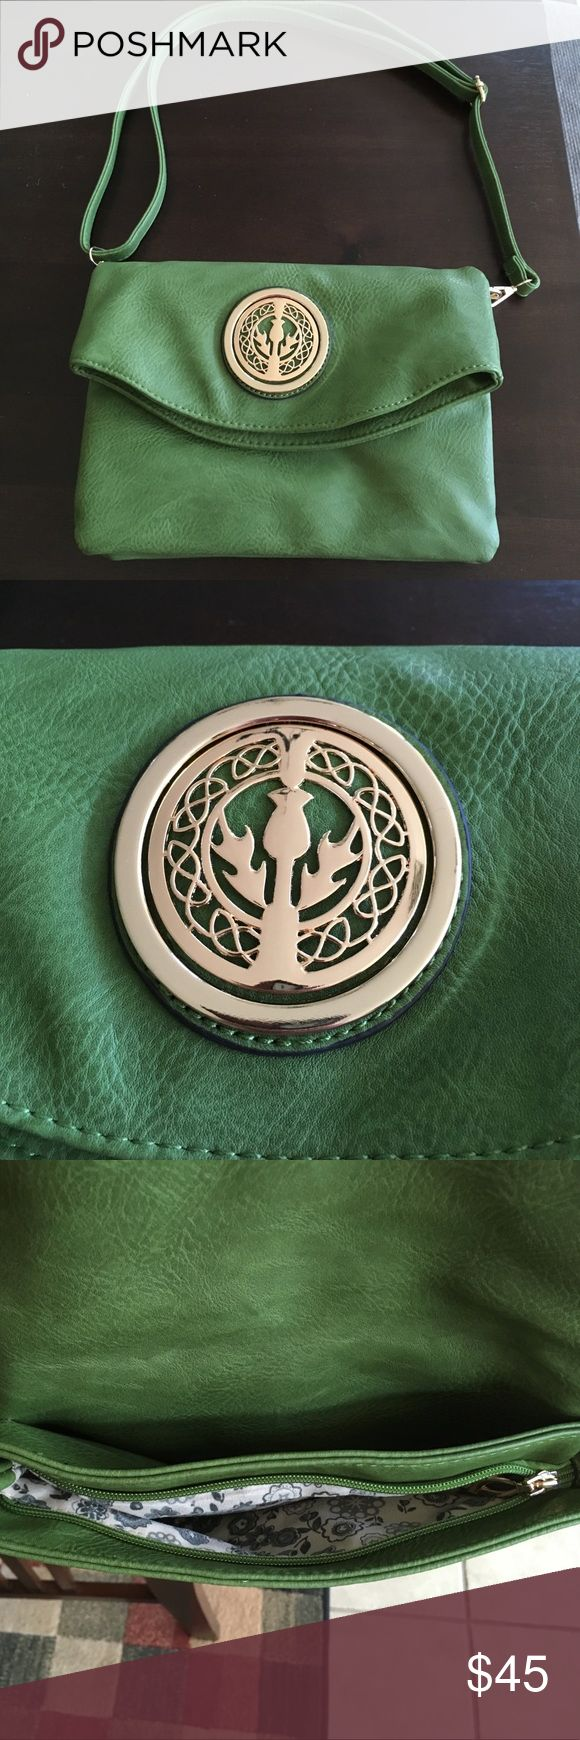 New Beautiful Scottish Hunter Green Purse Bought in Scotland. Never used as was to be a gift. Scottish thistle emblem. Lots of storage as it has 4 different pockets/access. Secure with both zipper and snaps closures. Can be worn as a shoulder bag or cross body bag due to adjustable strap. Leather look and feel. Very unique. Bought in a boutique not a chain. Bags Shoulder Bags